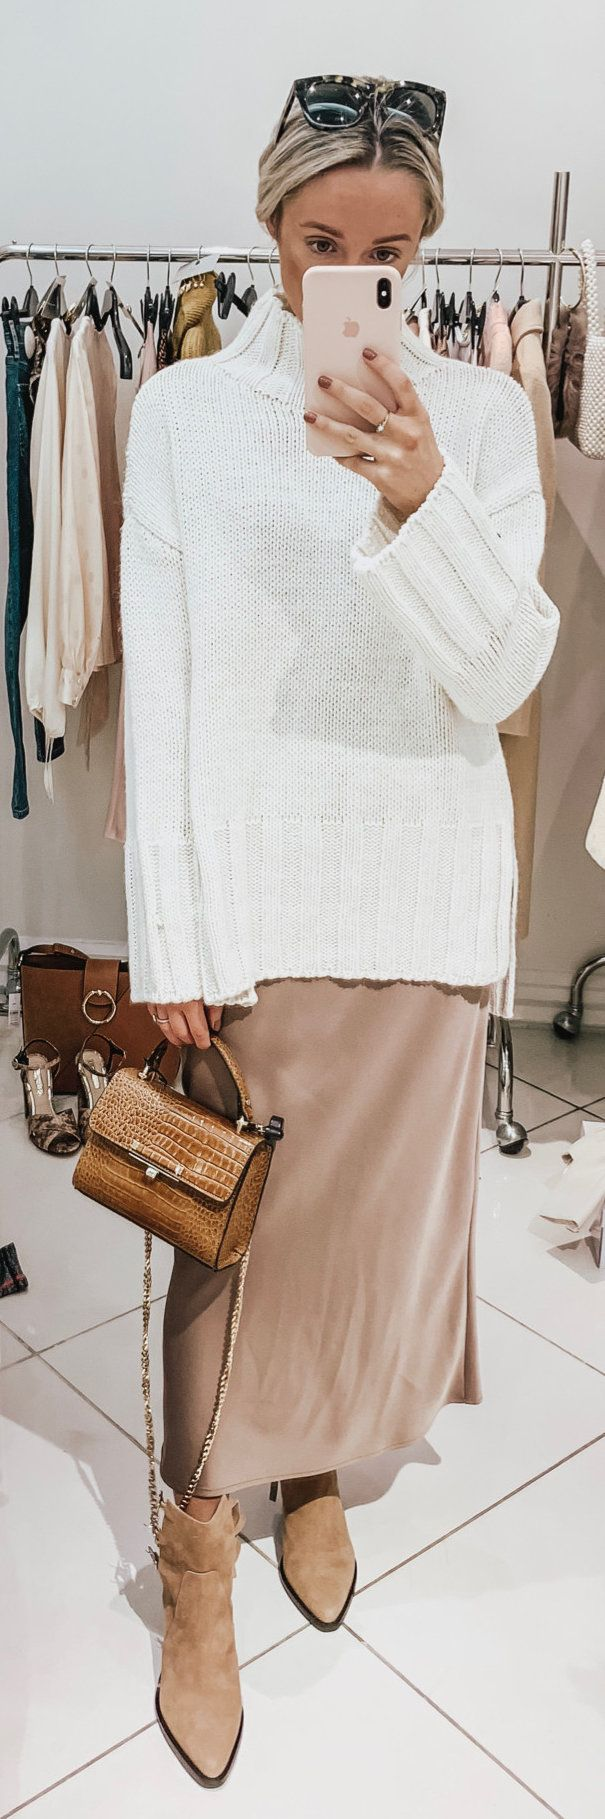 white and brown leather crossbody bag #winter #outfits